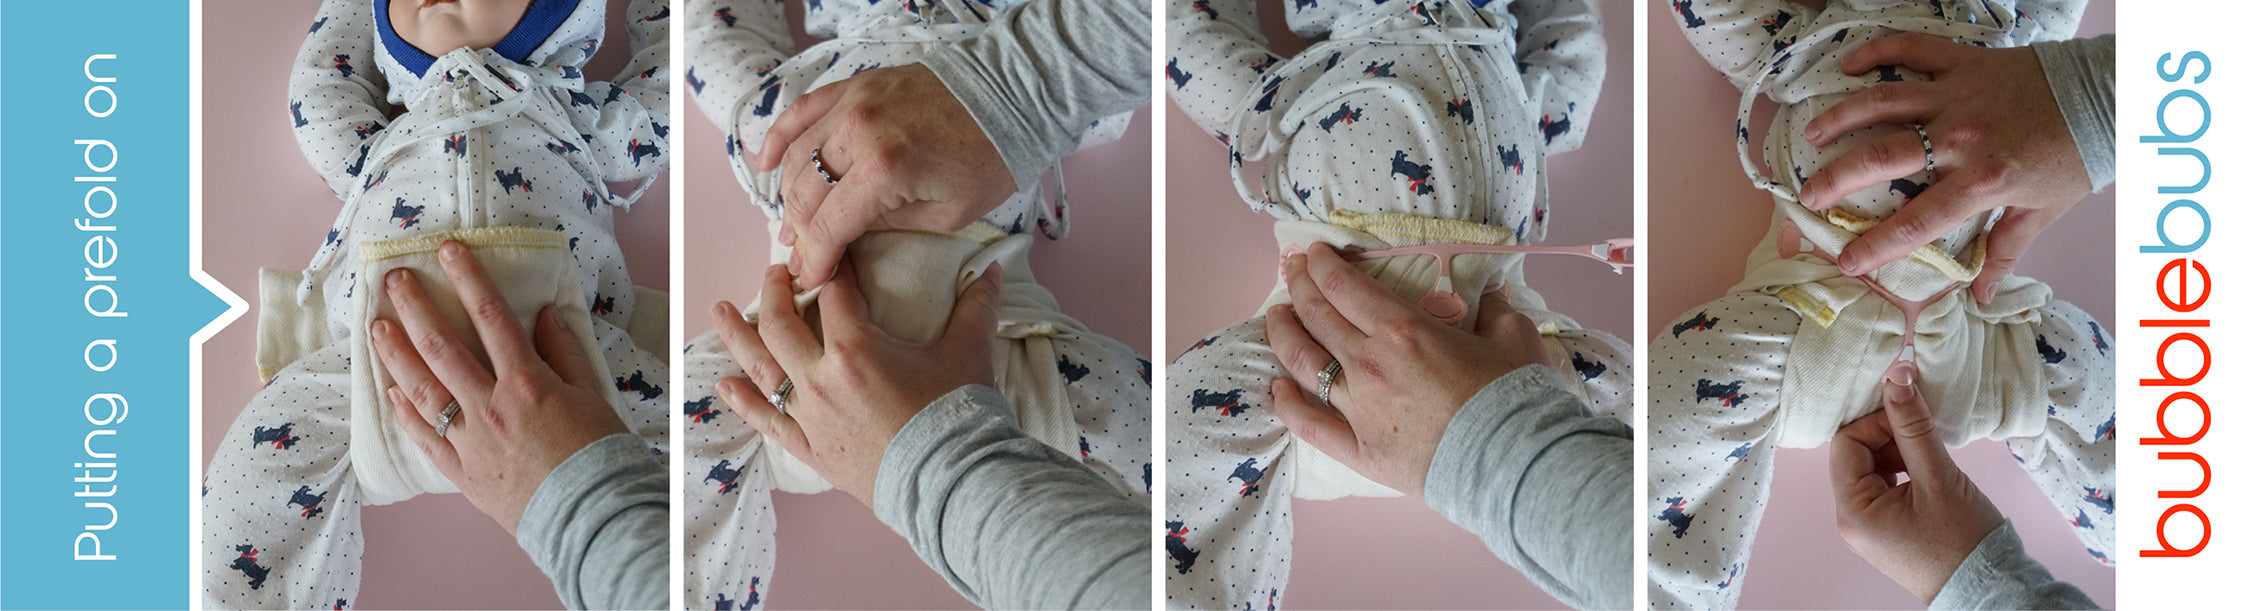 Steps to put a prefold cloth nappy onto a baby.